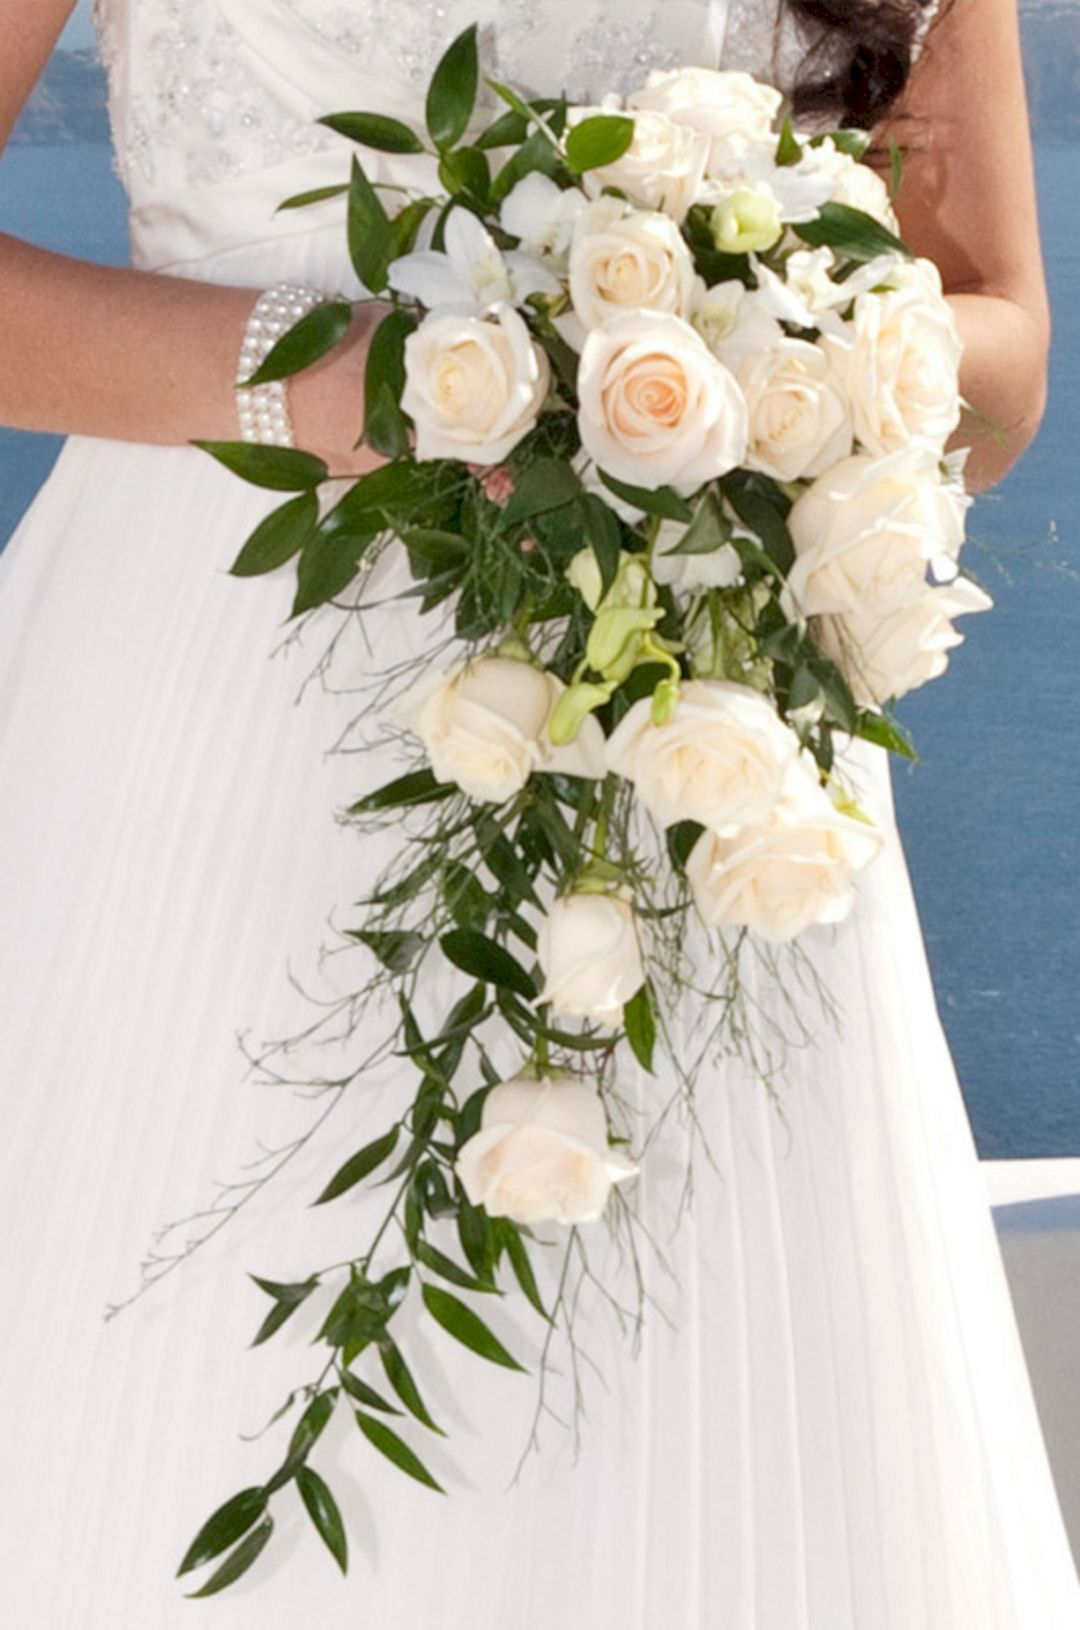 15 Awesome Flower Wedding Bouquet Ideas White Rose Wedding Bouquet Cascading Wedding Bouquets Cascading Bridal Bouquets